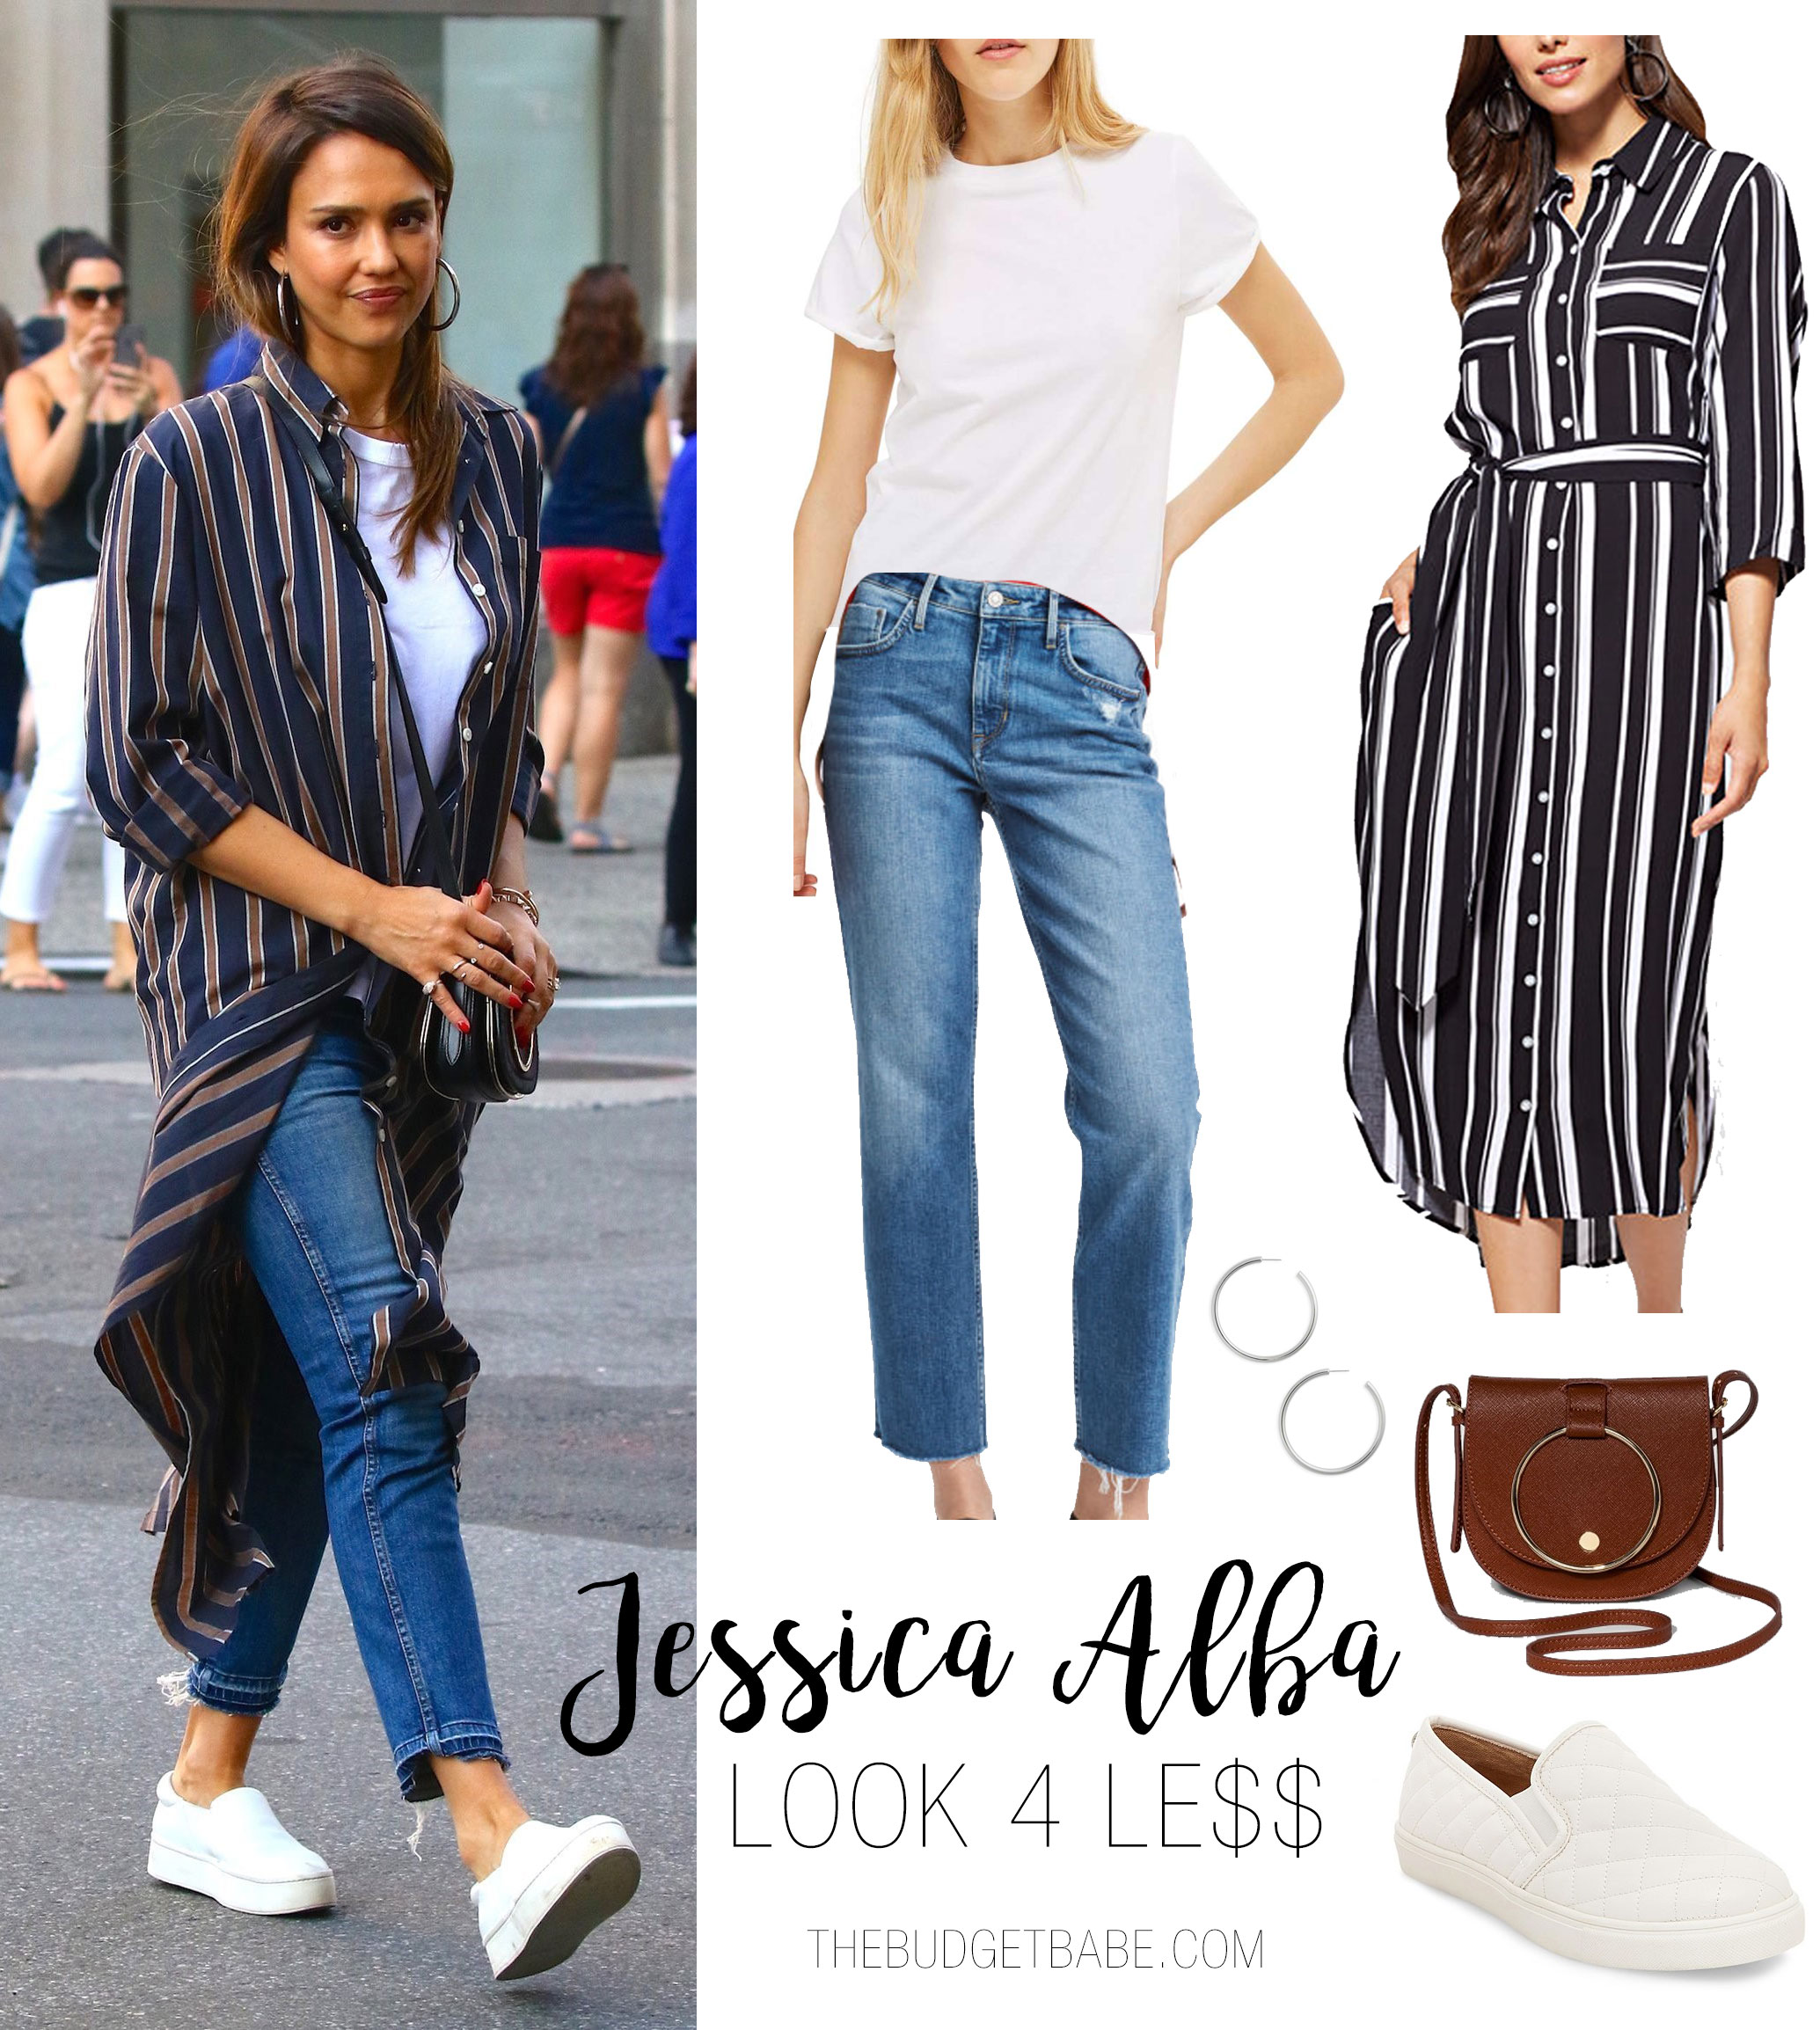 Jessica Alba looks cute and casual in a stripe duster, white tee, jeans and white sneakers.